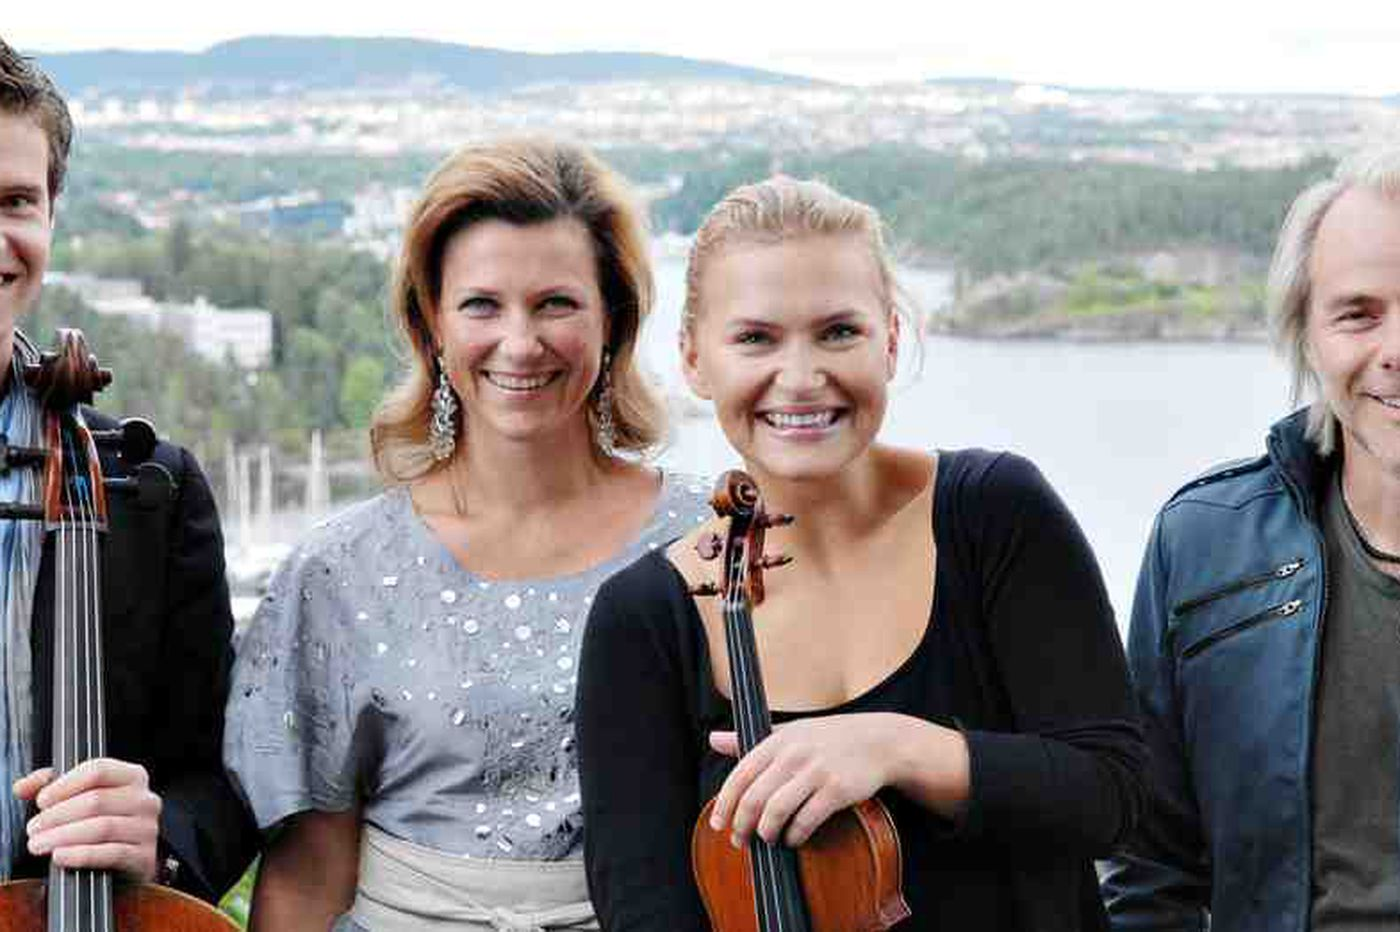 A Norway concert, calm and bright